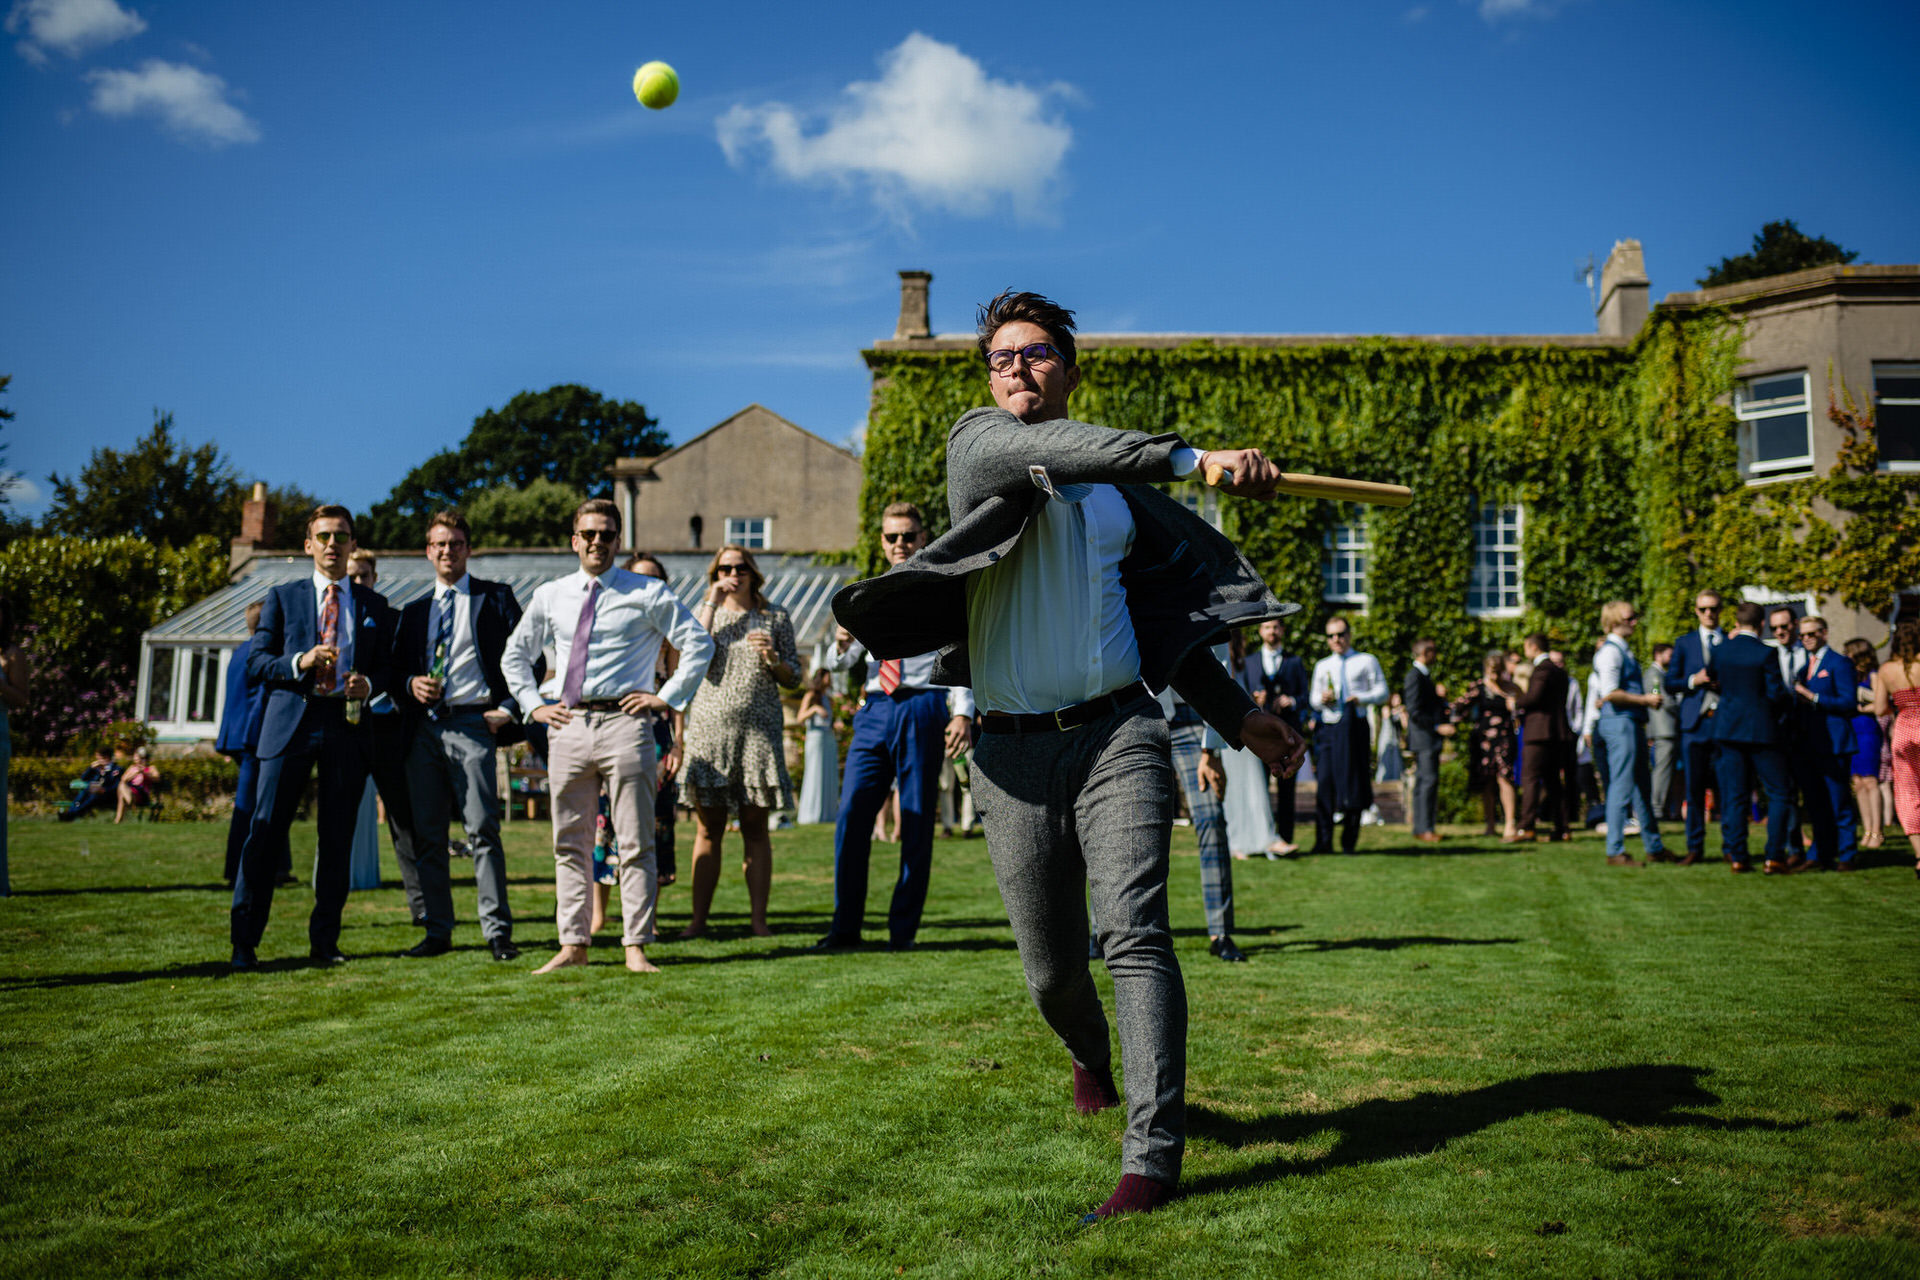 Wedding games at Pennard house Somerset